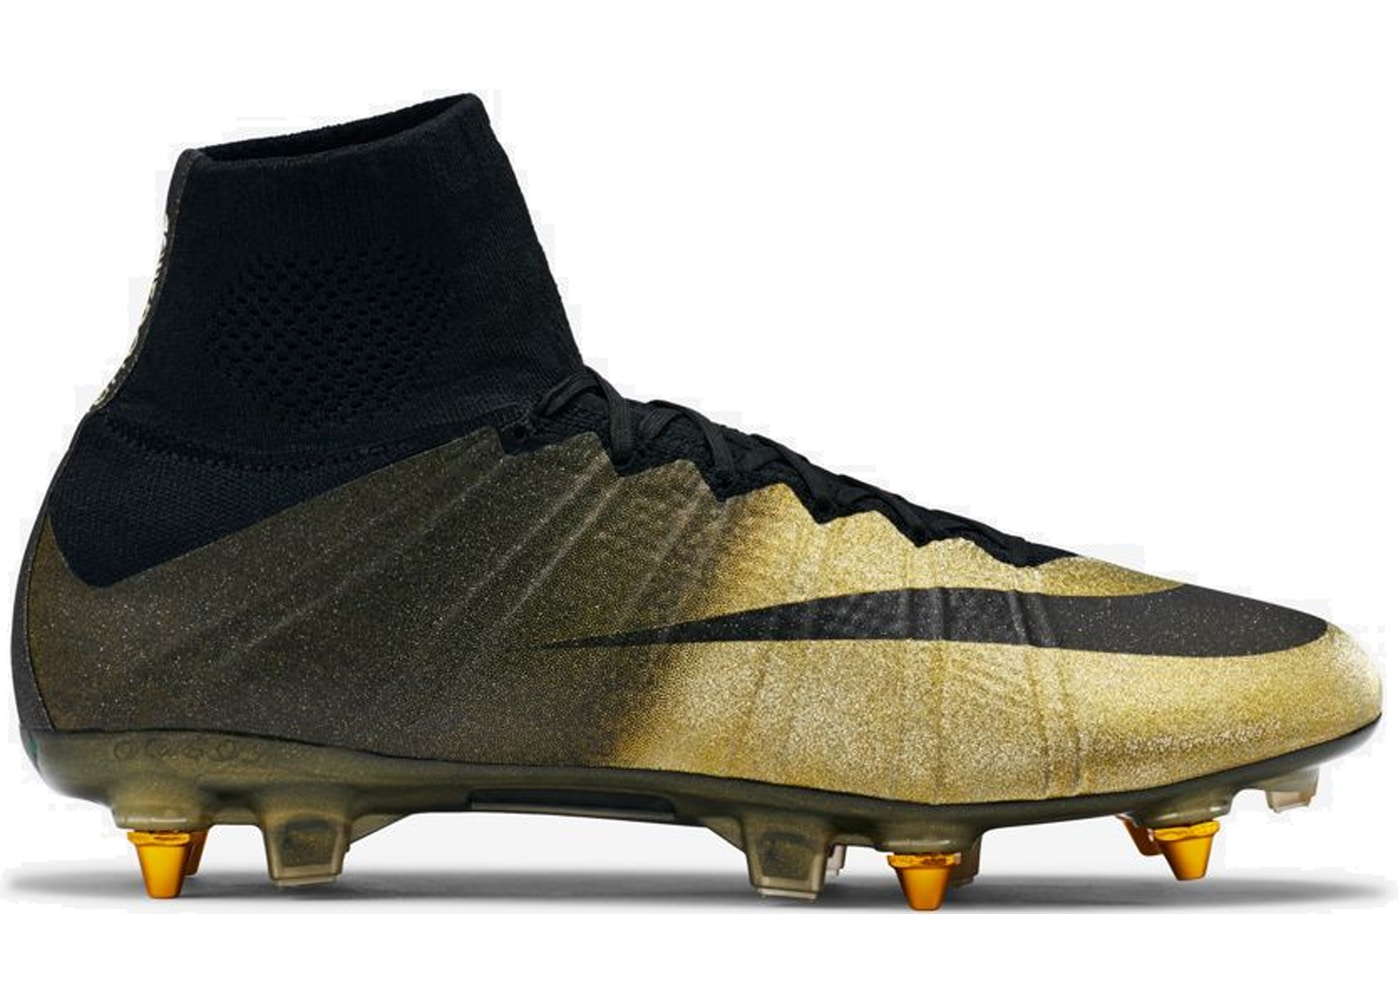 sports shoes eb3b8 0cf50 Nike Mercurial Superfly CR7 Cristiano Ronaldo Rare Gold - 804076-090